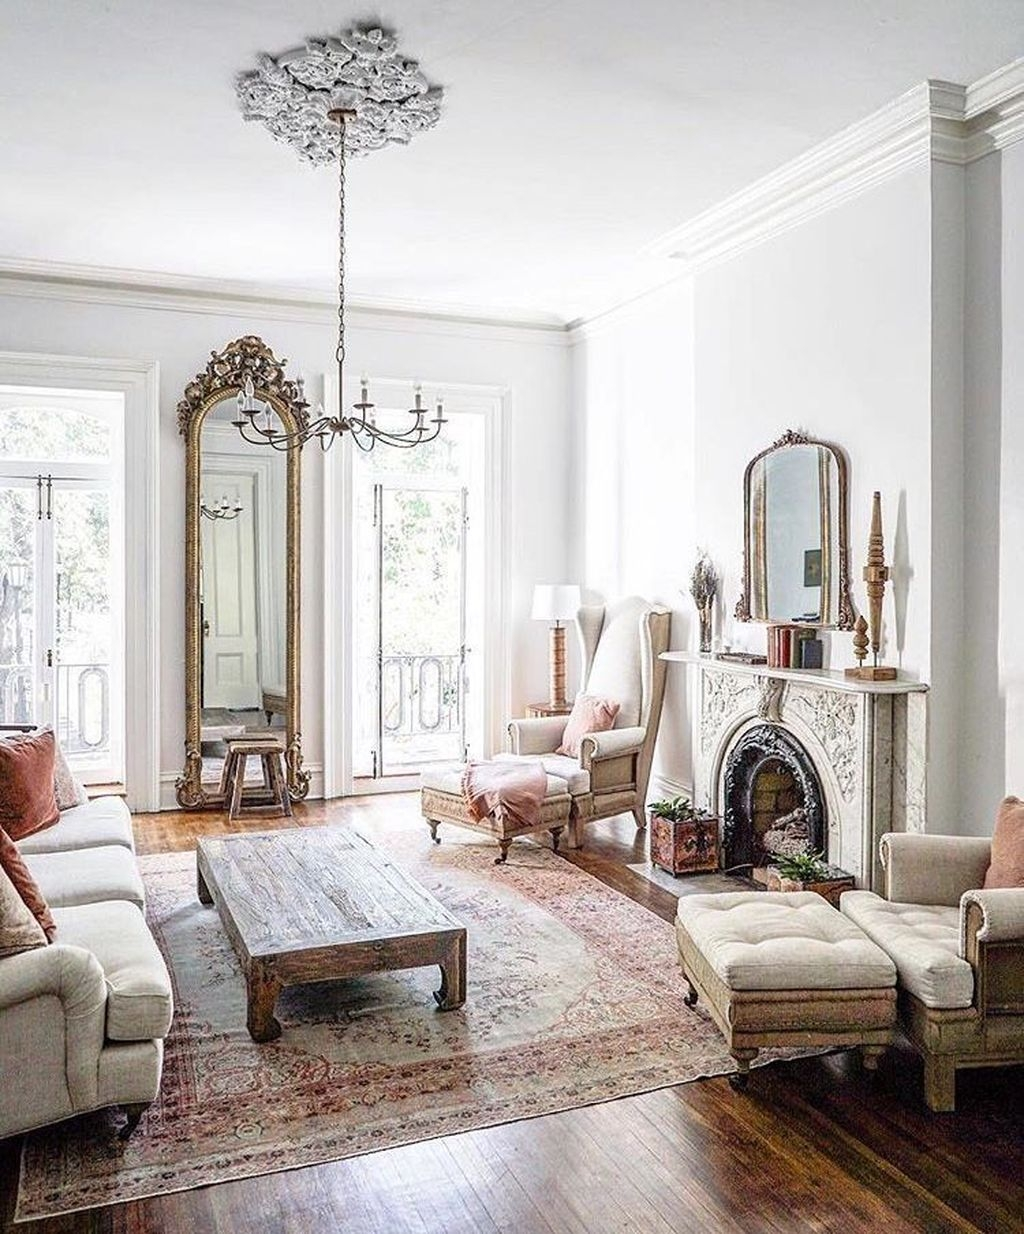 Awesome Living Room Mirrors Design Ideas That Will Admire You21